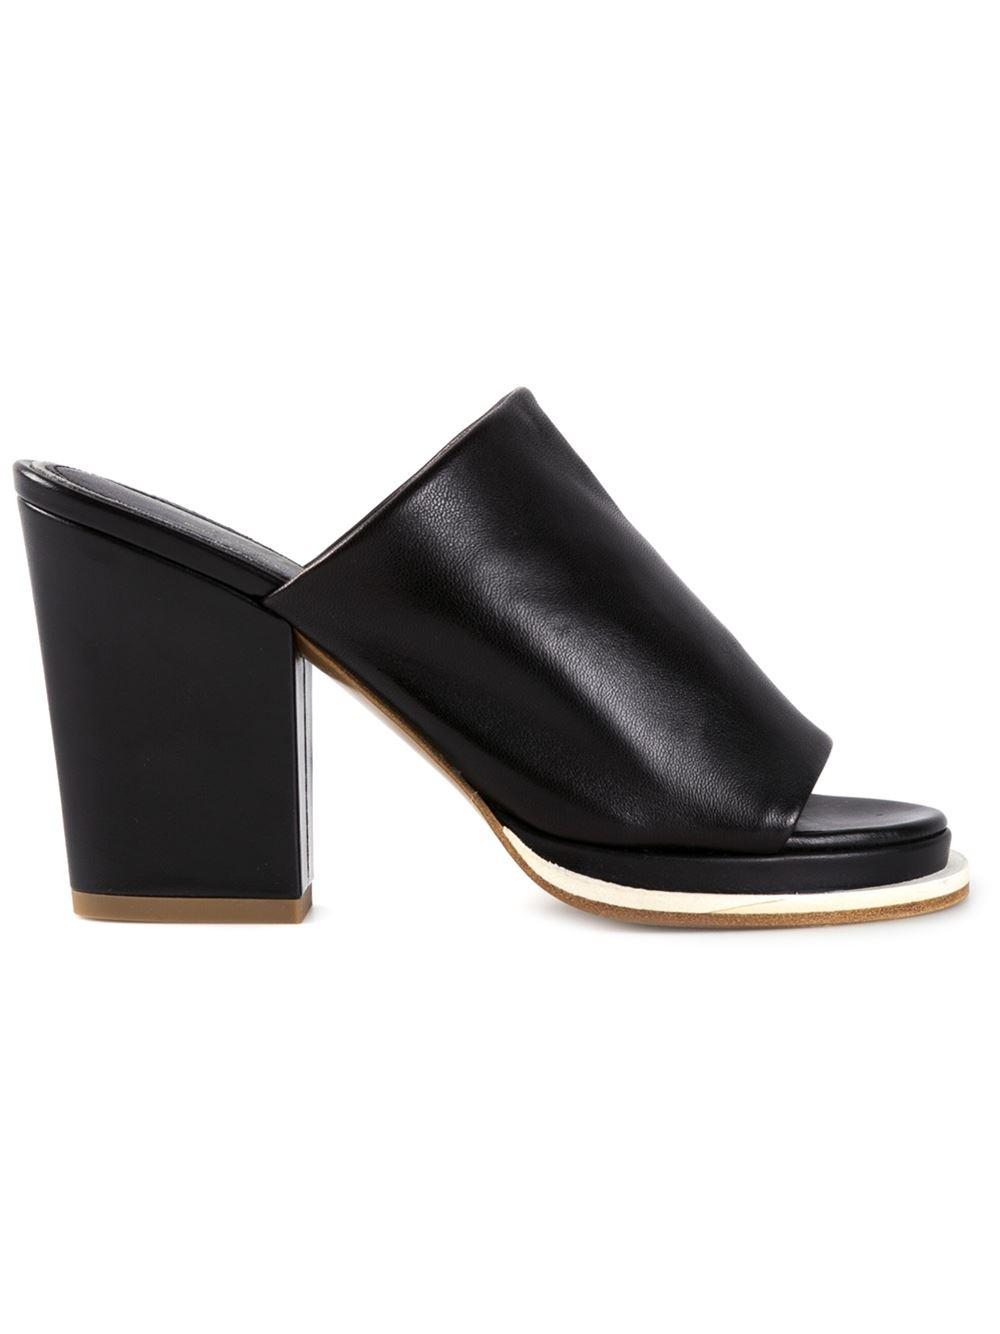 Robert Clergerie Shoes Sale